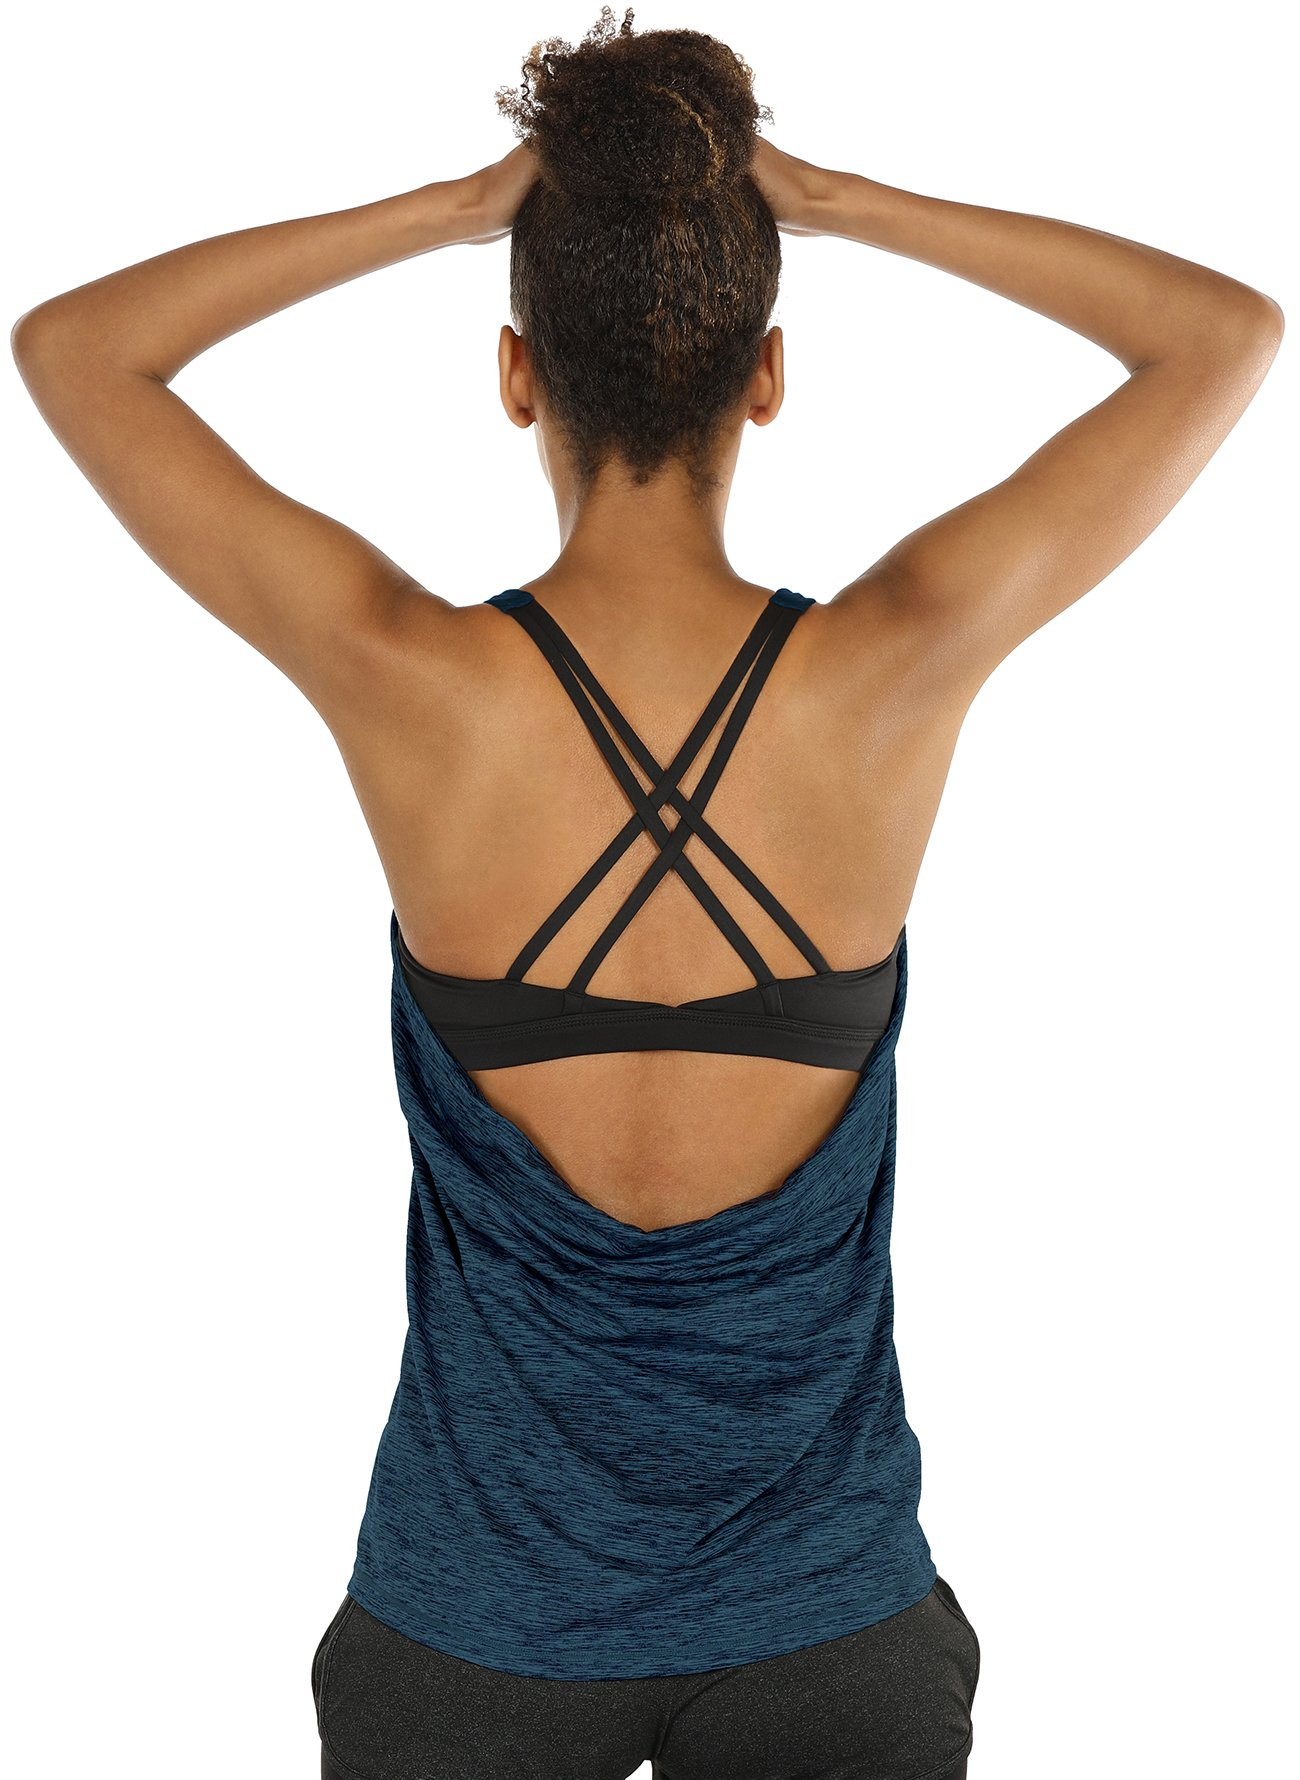 icyzone Yoga Tops Workouts Clothes Activewear Built in Bra Tank Tops for Women(M, Blue)